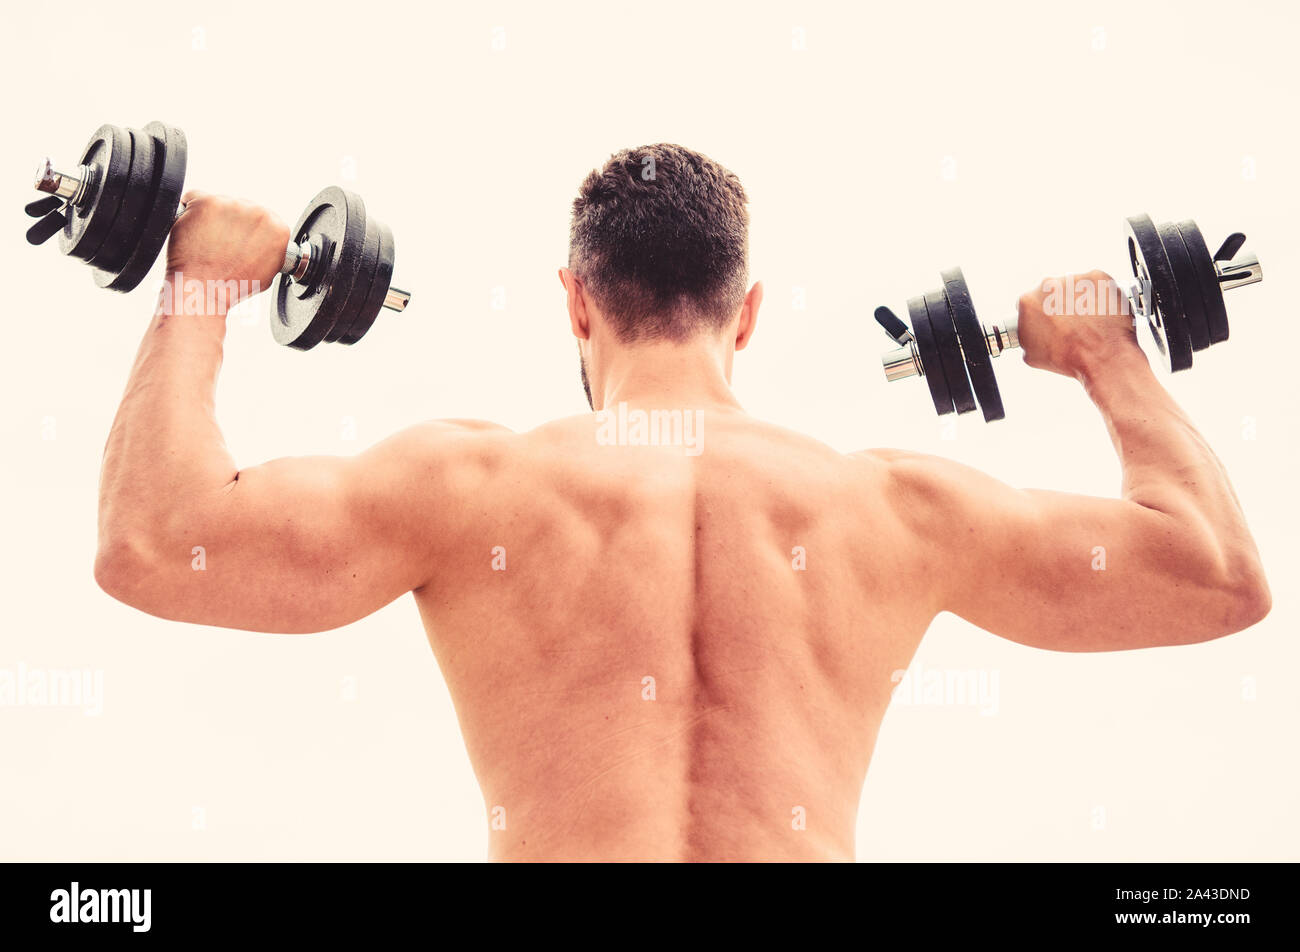 Actions speak louder than coaches. Dumbbell exercise gym. Muscular man exercising with dumbbell rear view. Sportsman with strong back and arms. Sport equipment. Bodybuilding sport. Sport lifestyle. Stock Photo